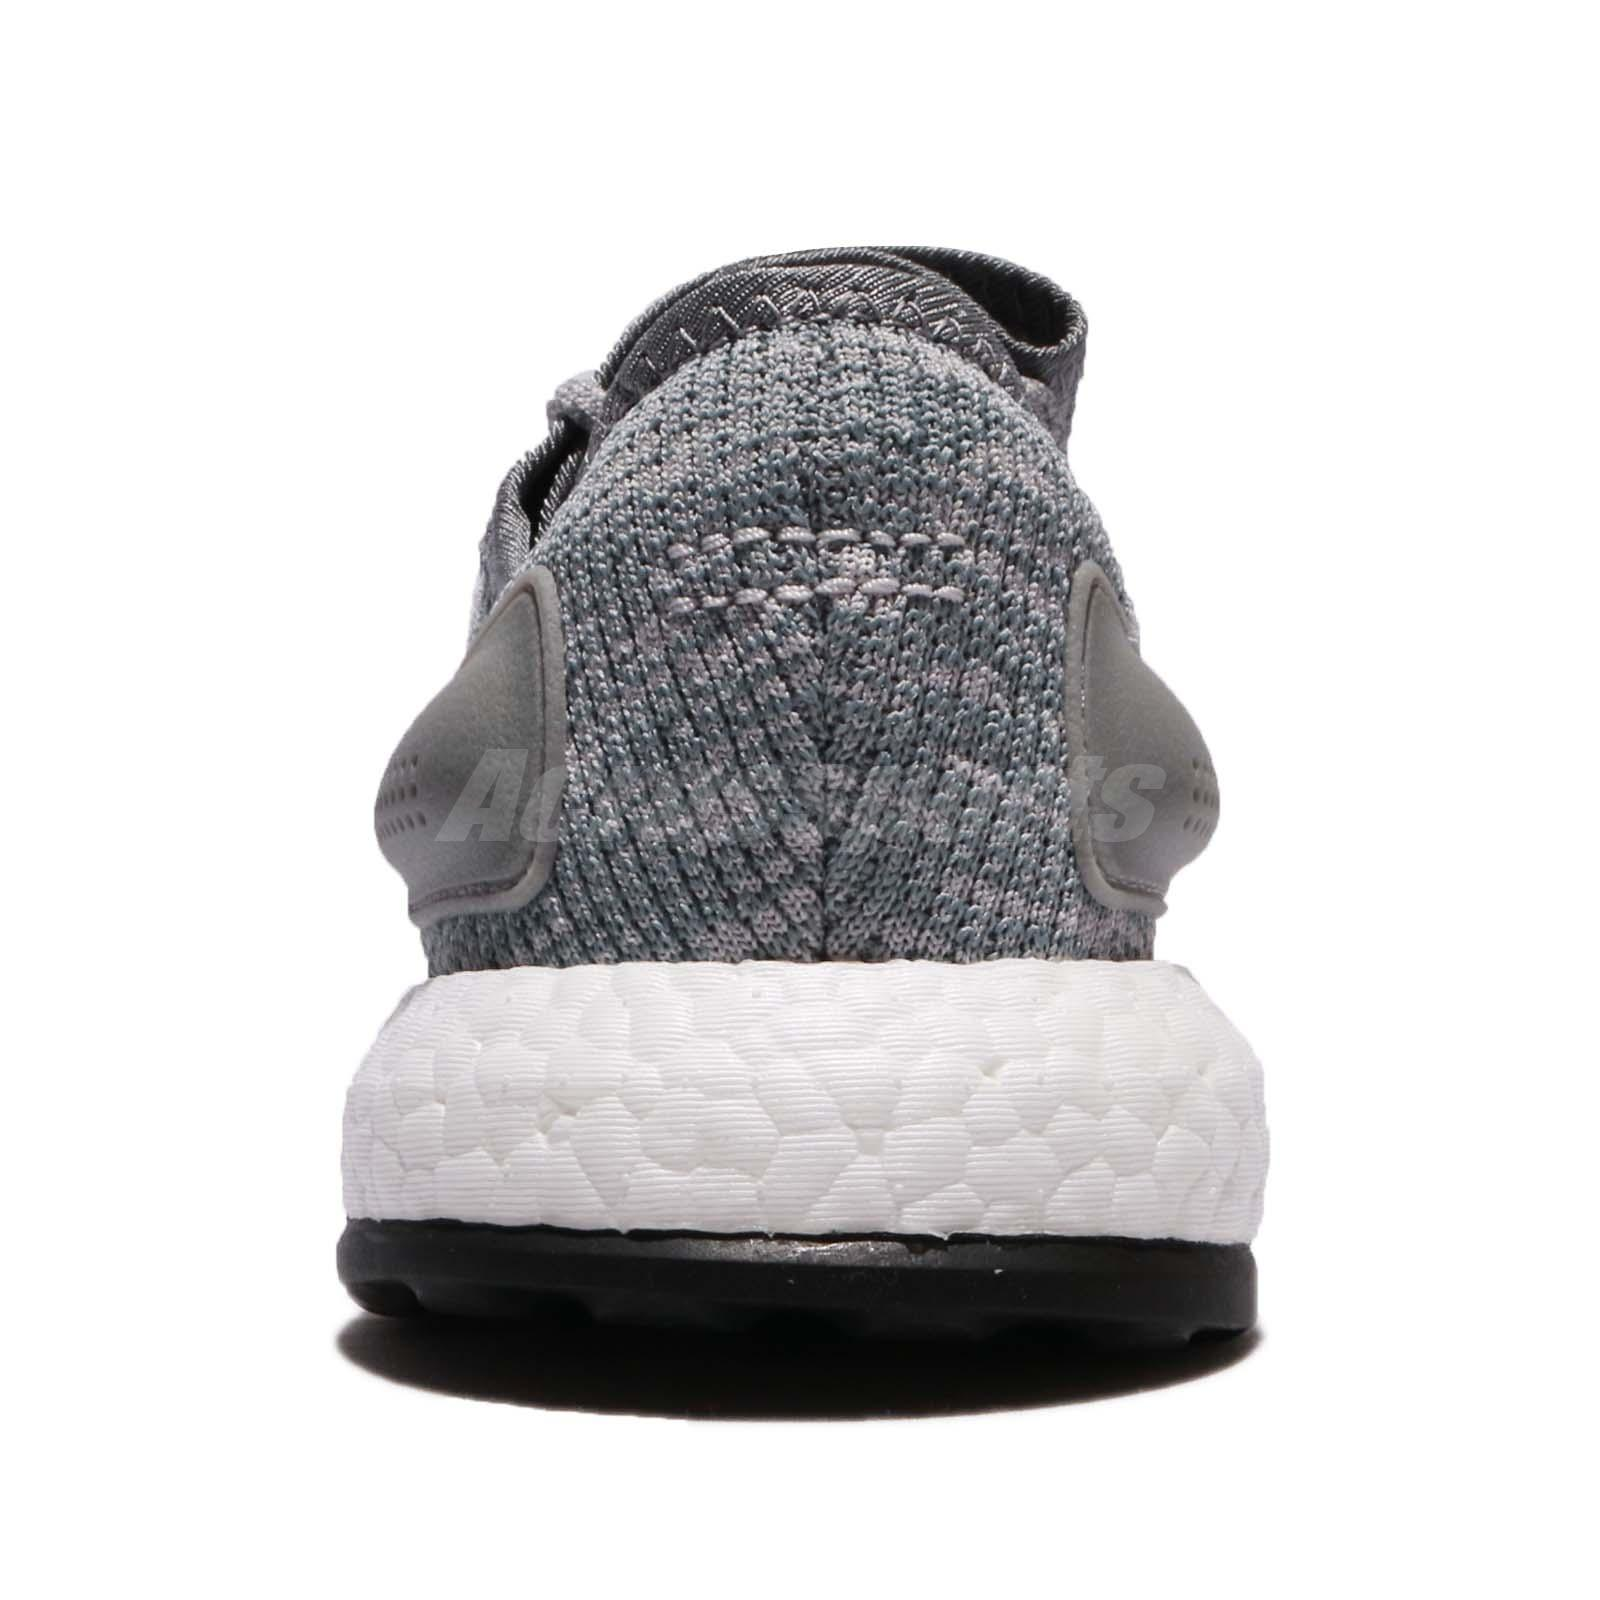 335f62087 adidas PureBOOST Grey White Men Running Shoes Sneakers Trainers ...